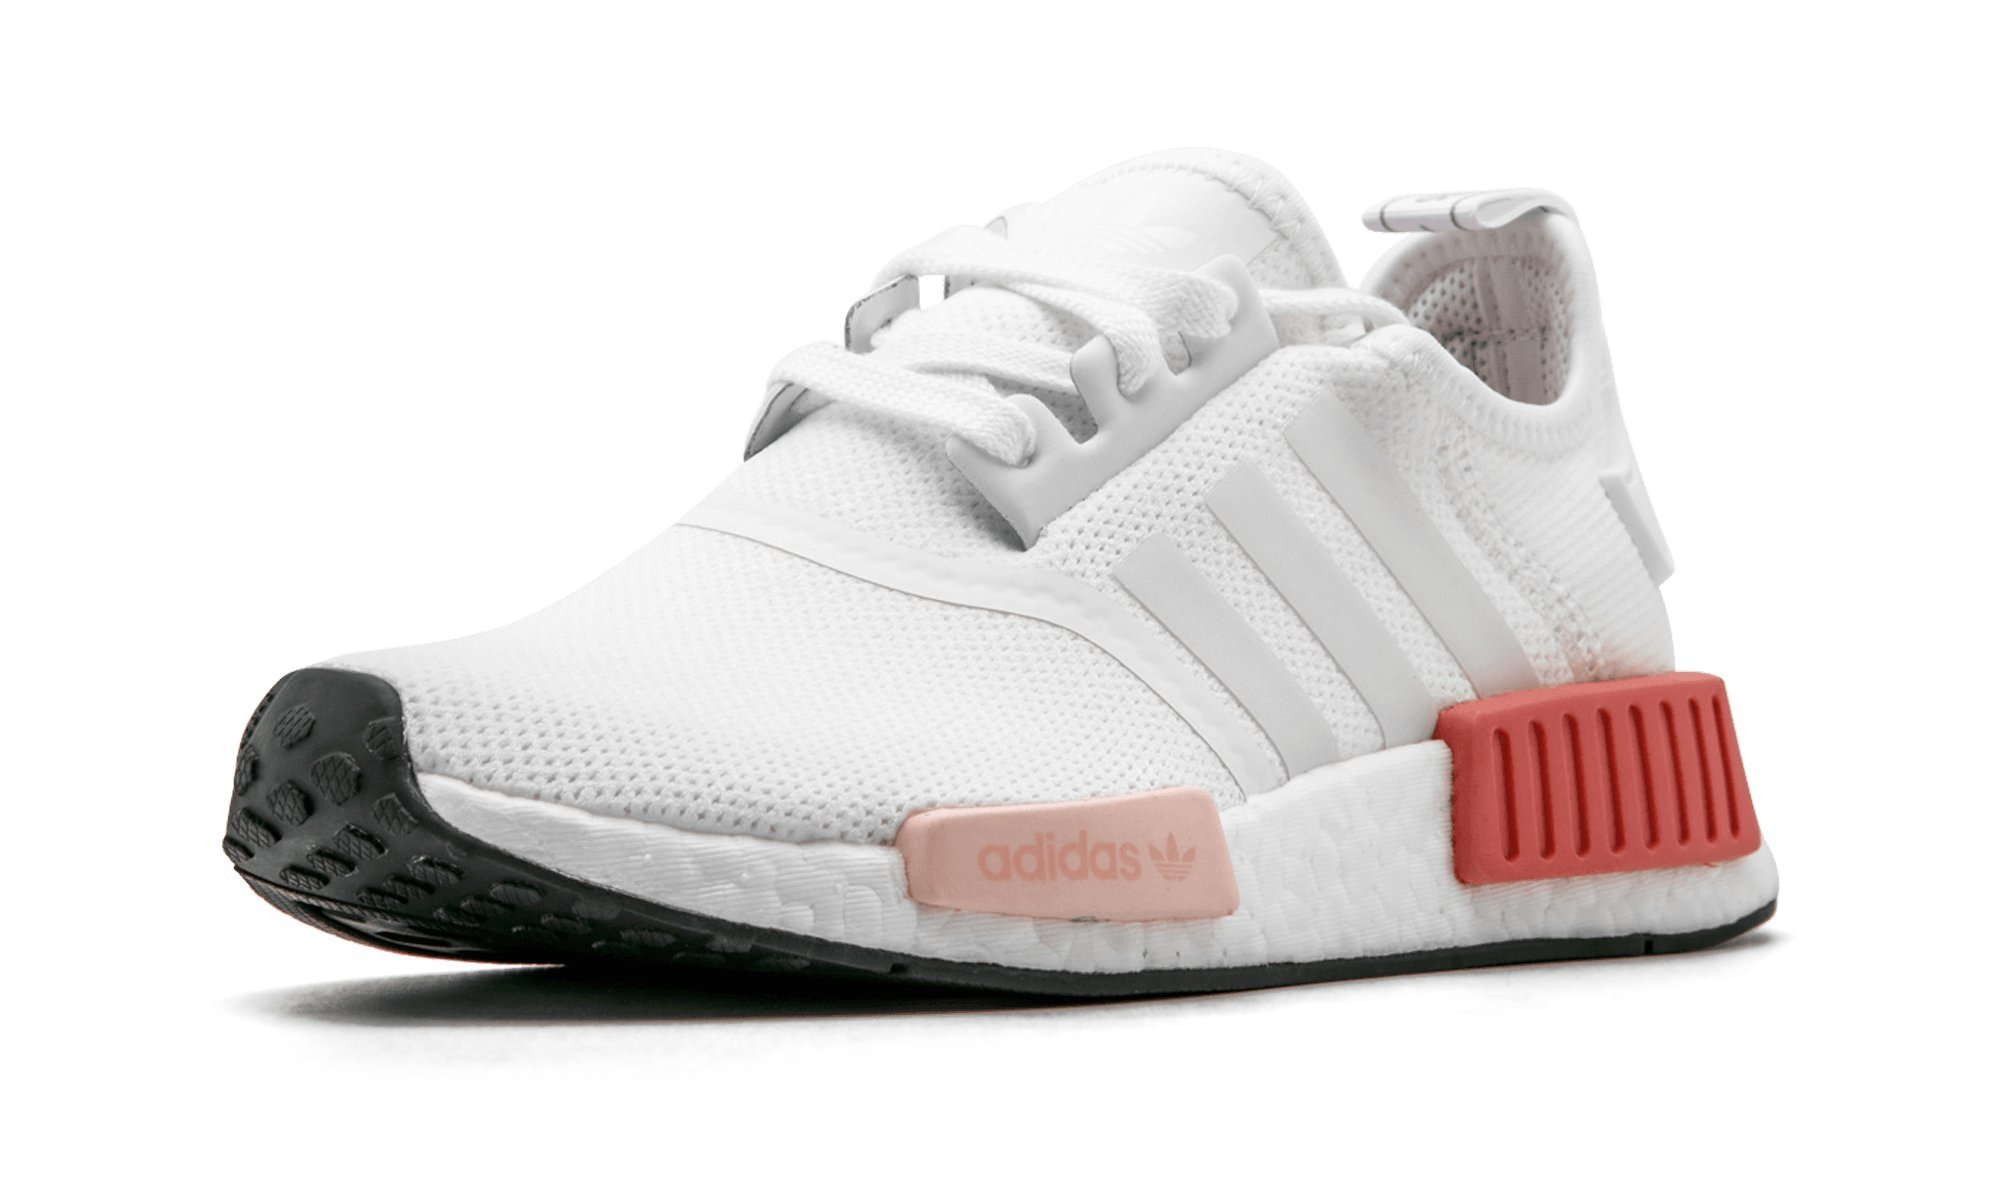 quality design 036c8 69bae adidas Originals Women's NMD_R1 W Running Shoe, White/Icey Pink, 5 M US